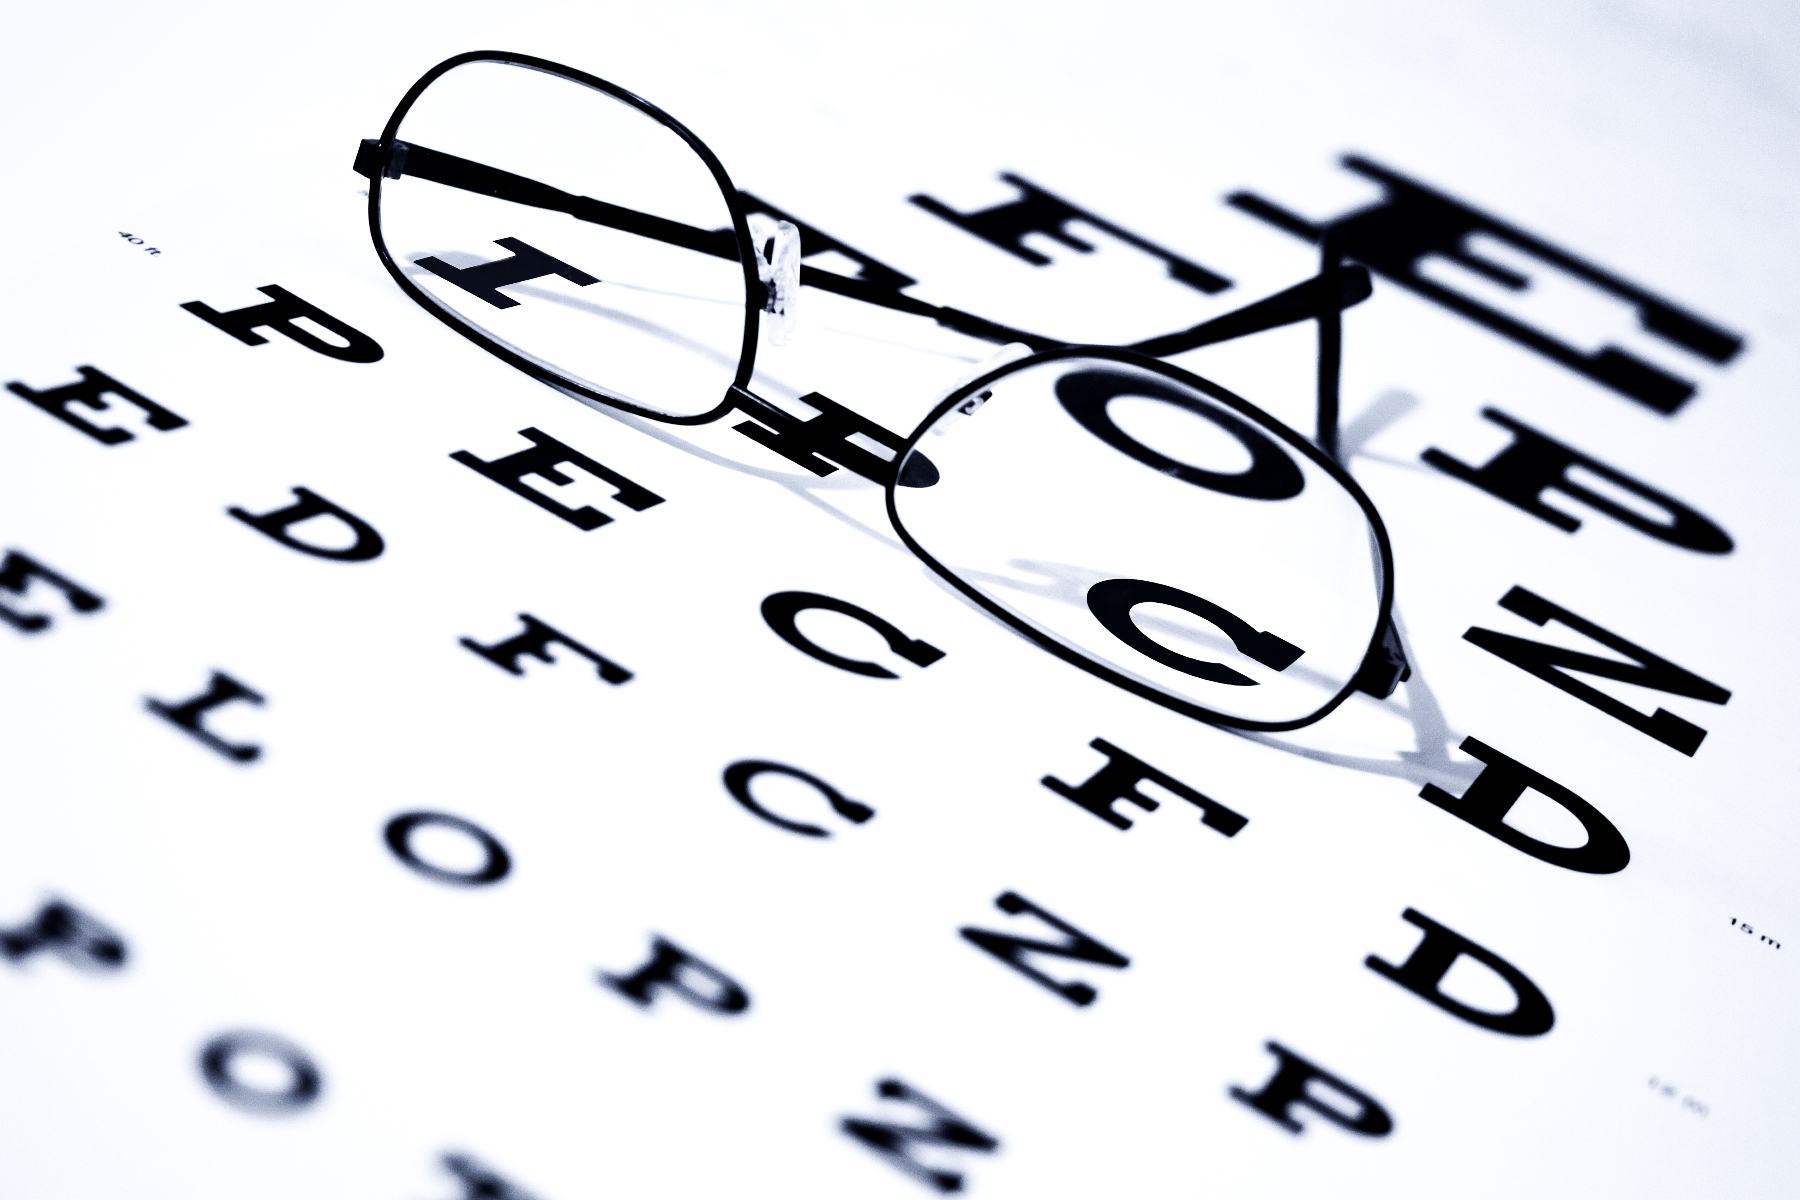 Everything you should know about visual acuity charts everything you should know about visual acuity charts newgradoptometry nvjuhfo Gallery